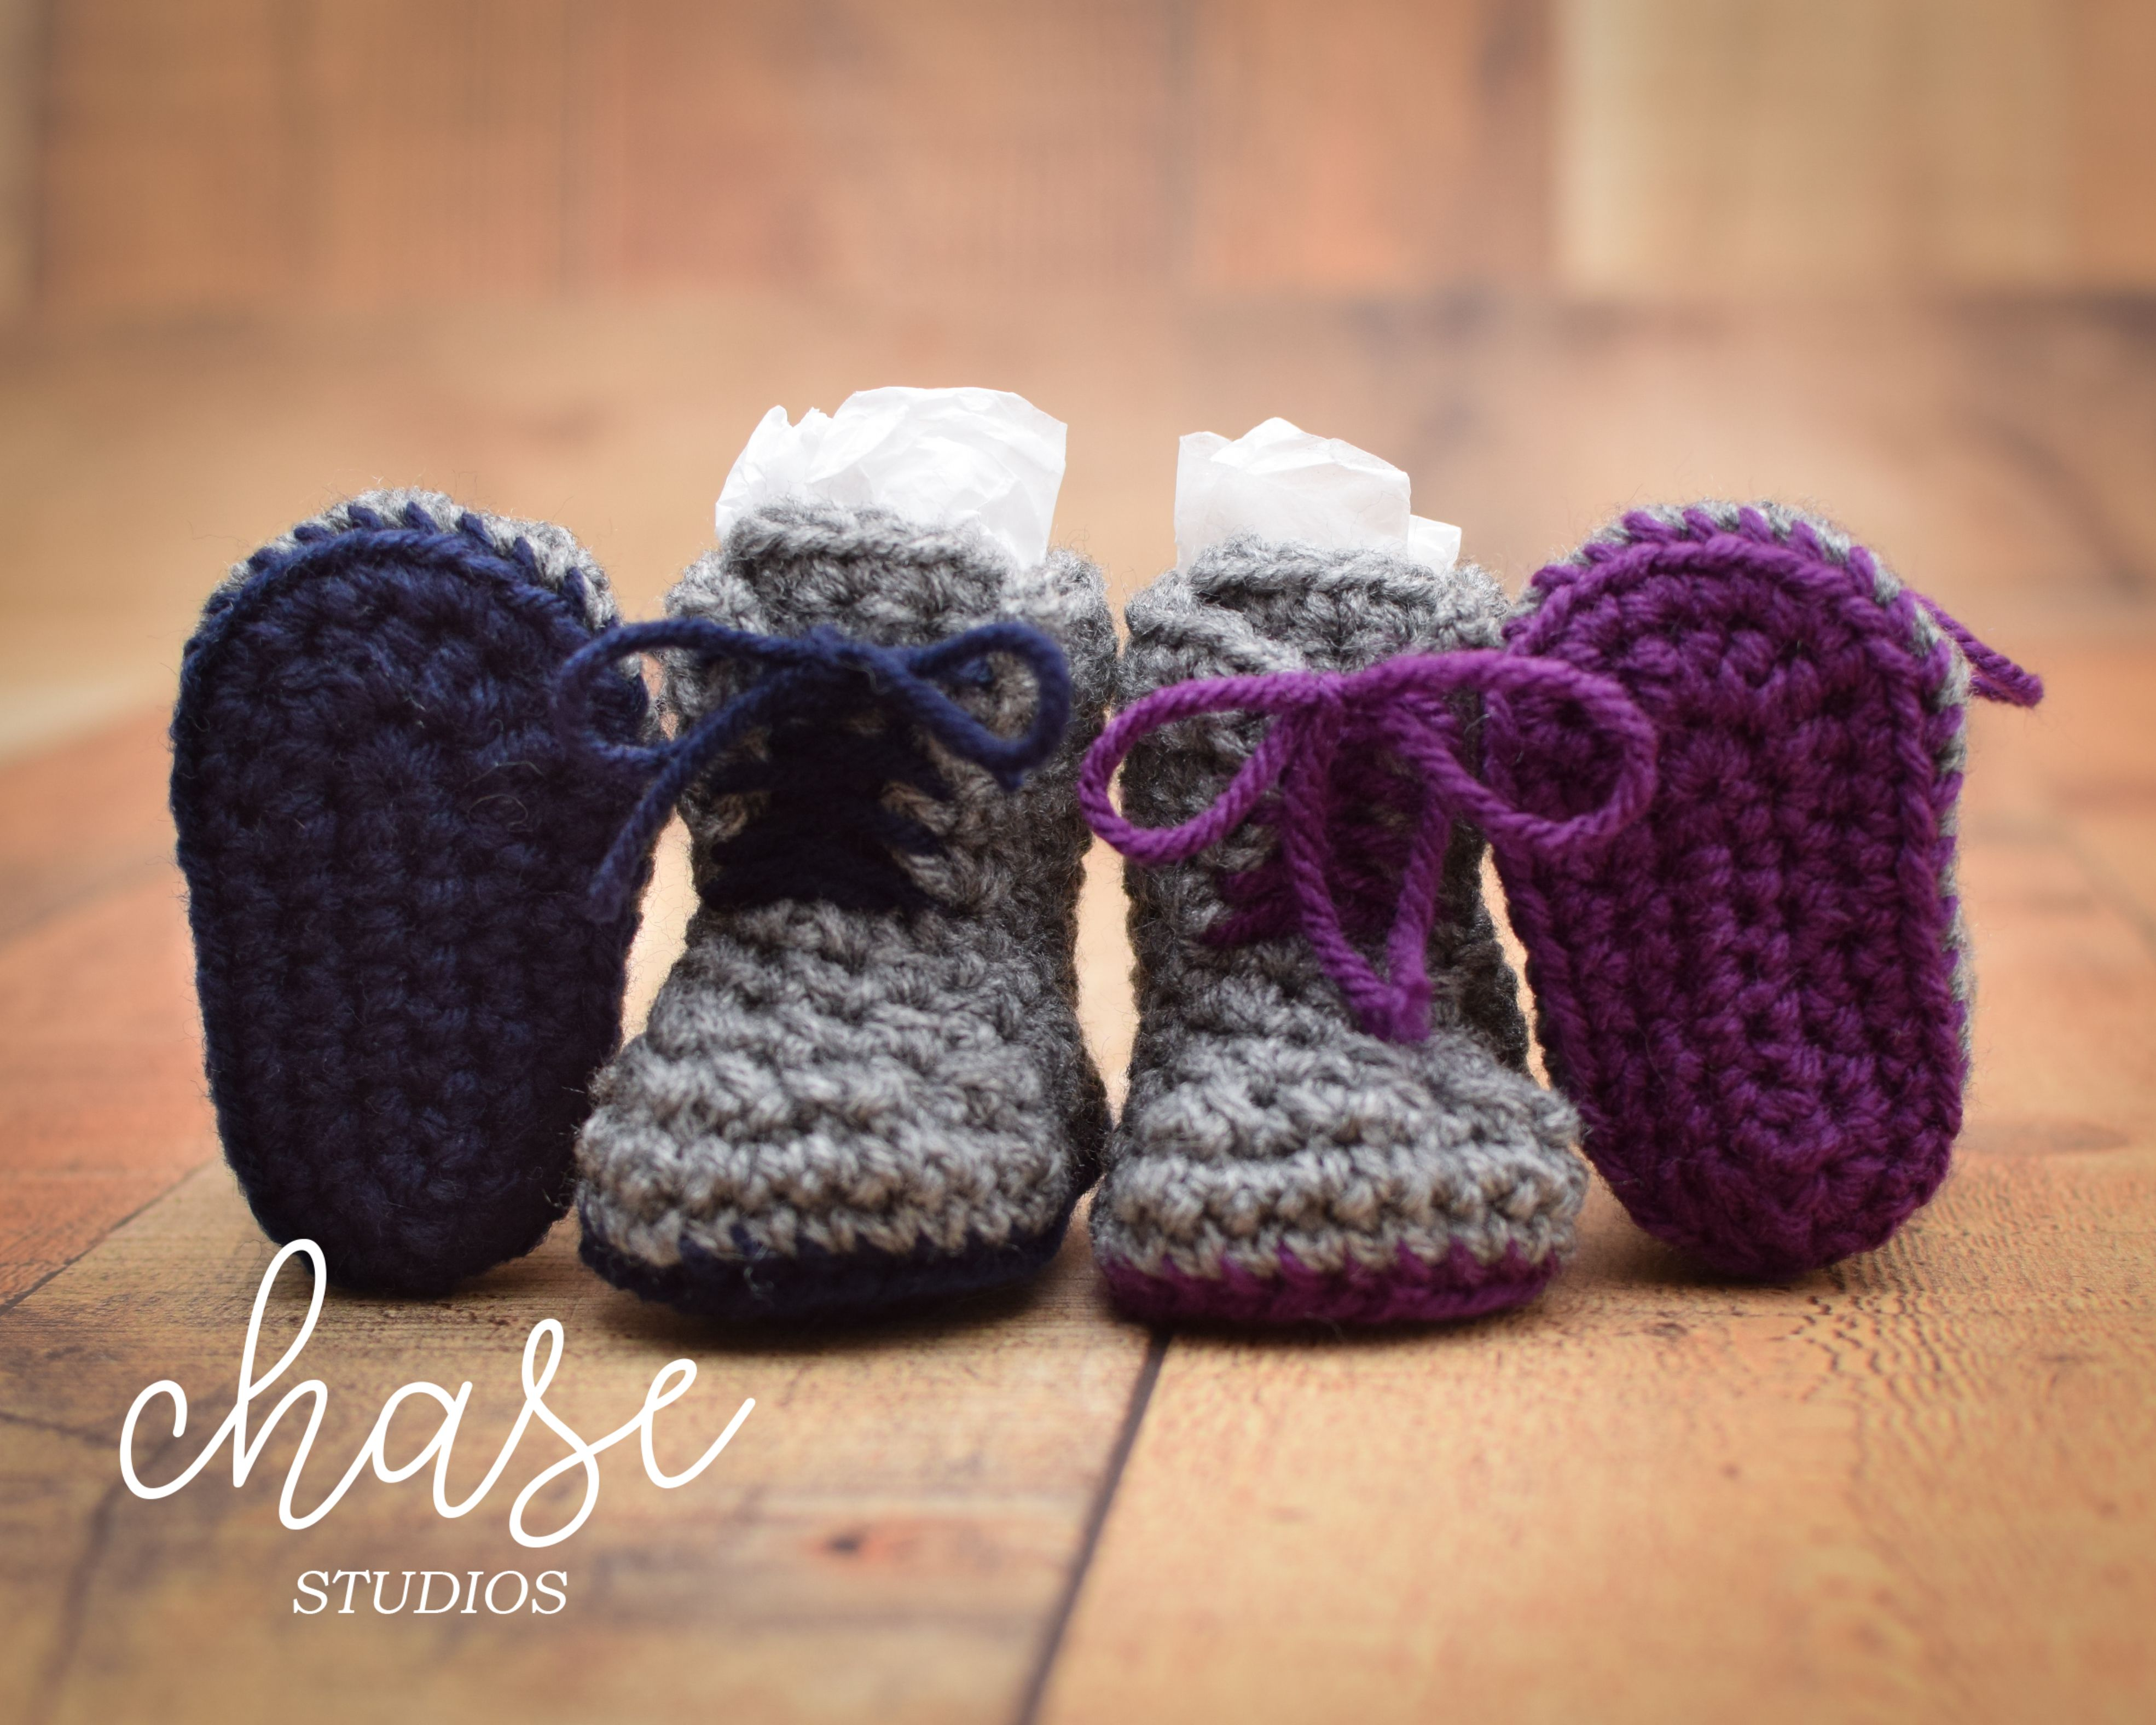 Allegheny Baby Boots   knitting &Crochet   Pinterest   Baby boots ...